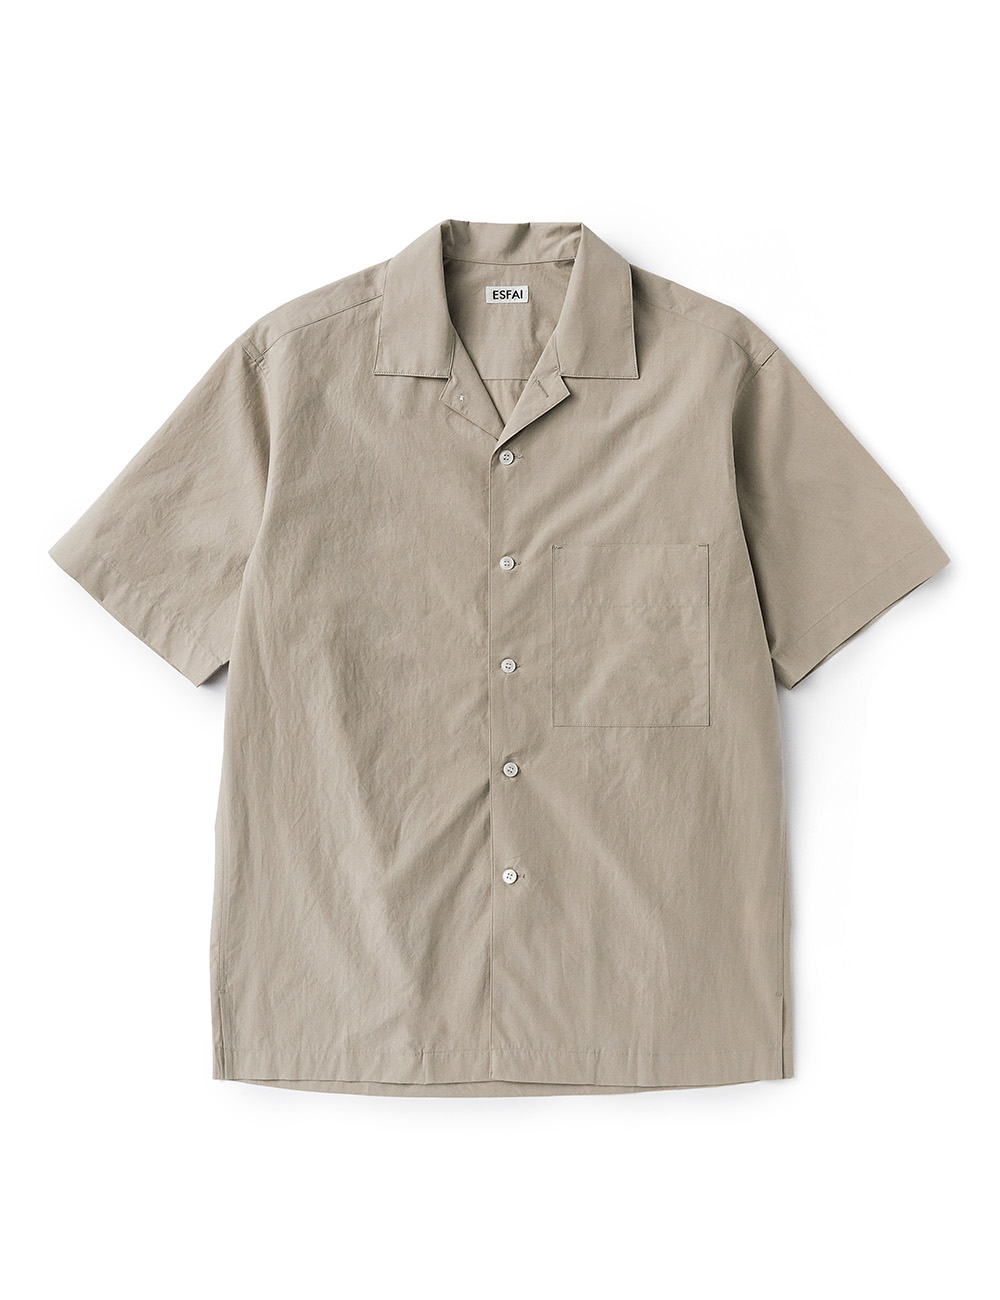 [ESFAI] sue02 summer standard shirts (Light Beige)